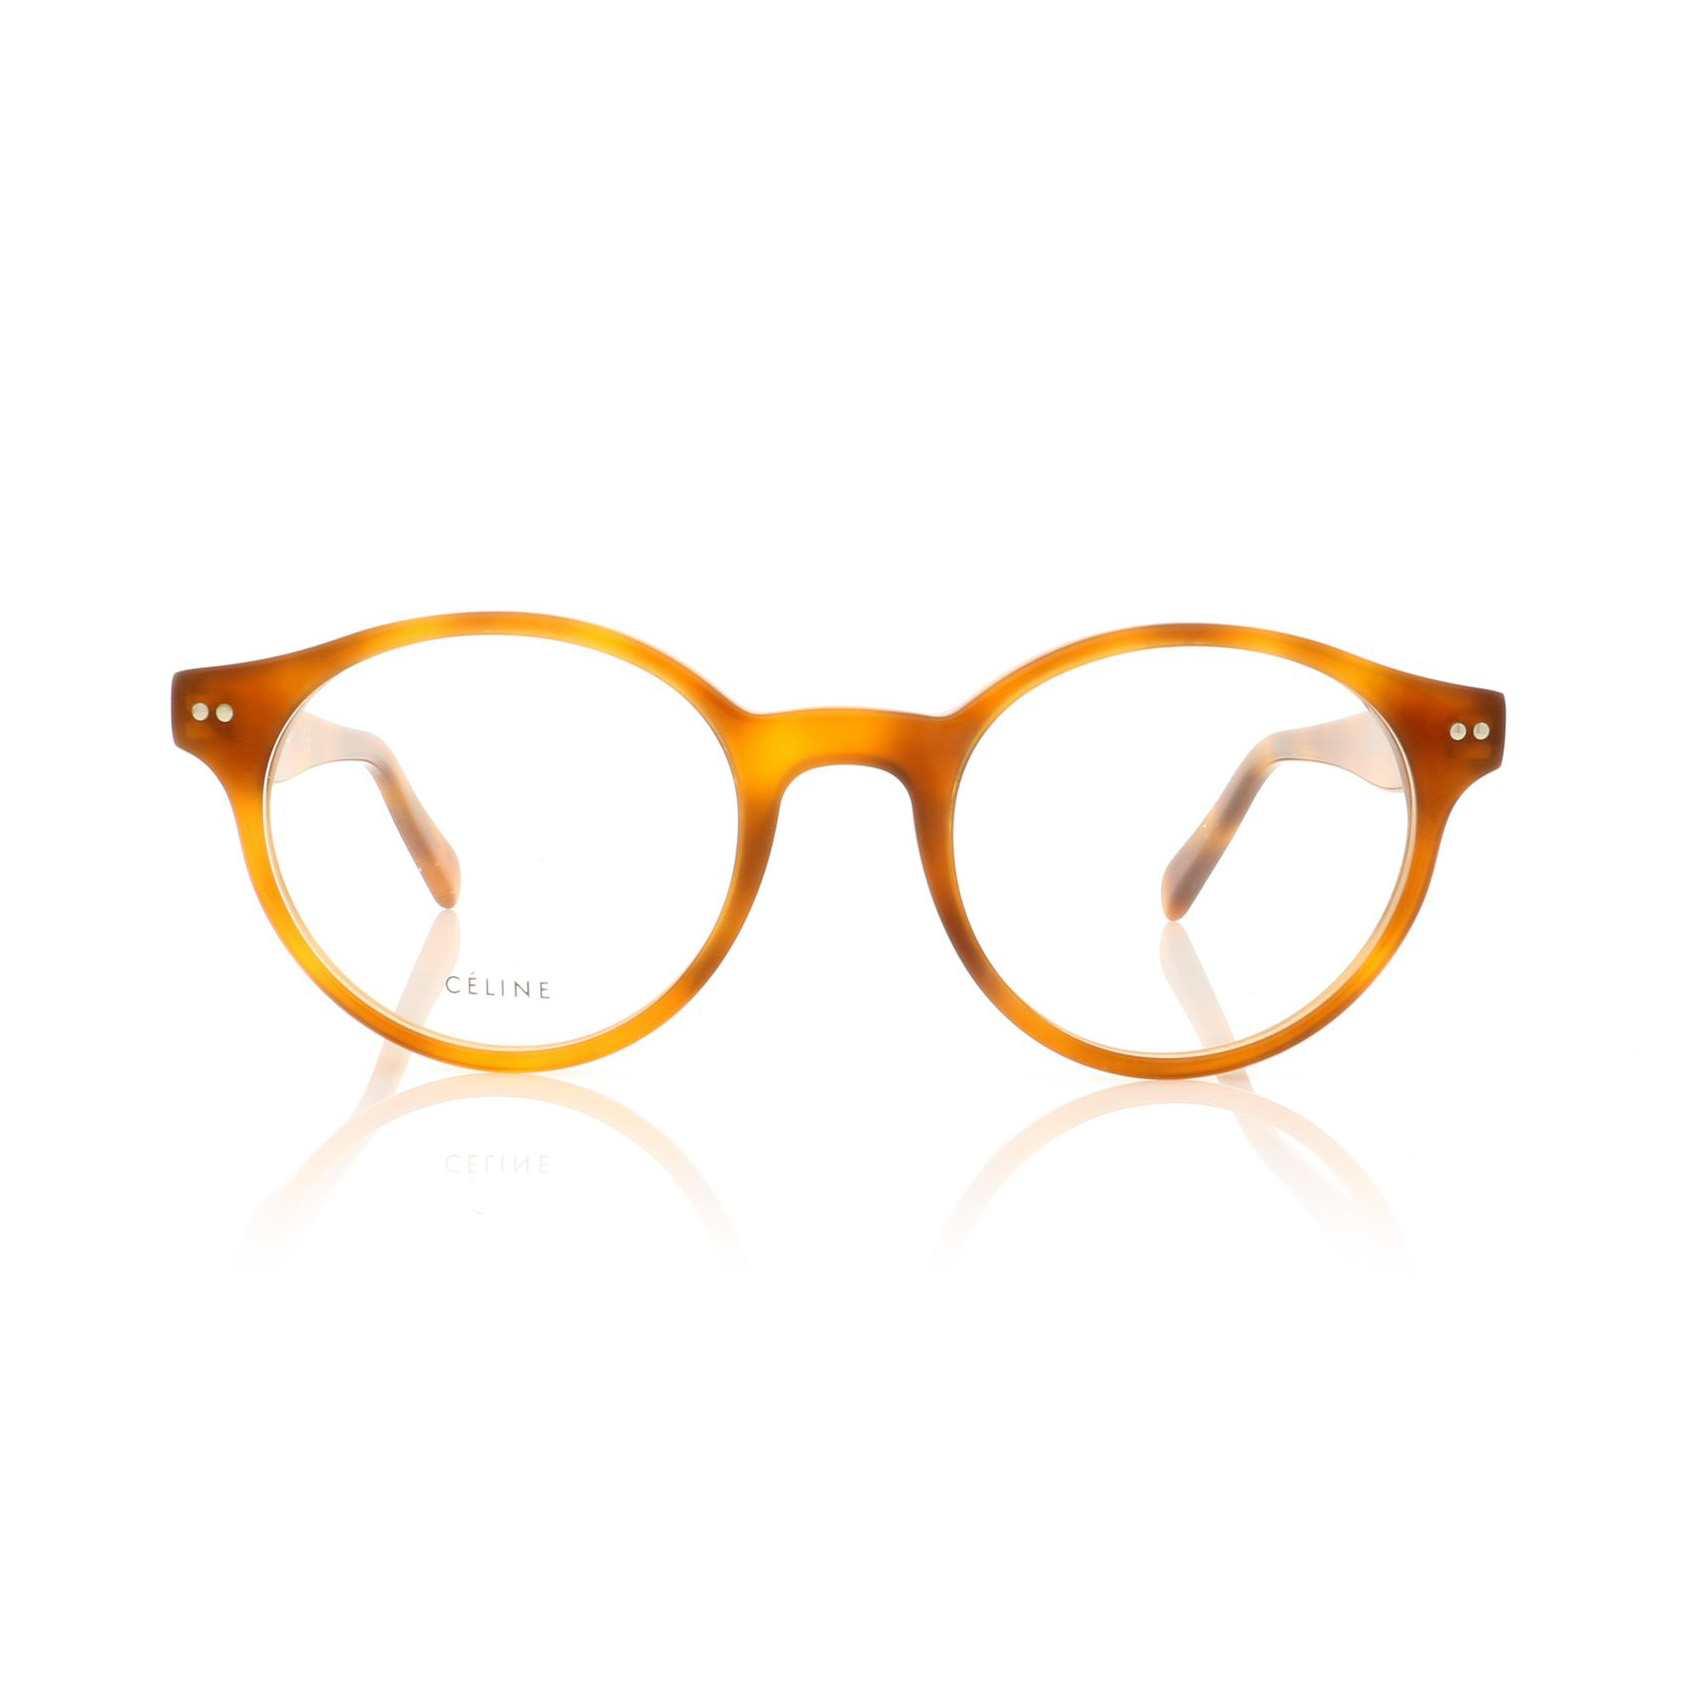 CELINE- CL50008I Optical  £240 (Sold out)  COLOUR Blonde Tortoise  CATEGORY Glasses  MATERIAL Acetate  SHAPE Round